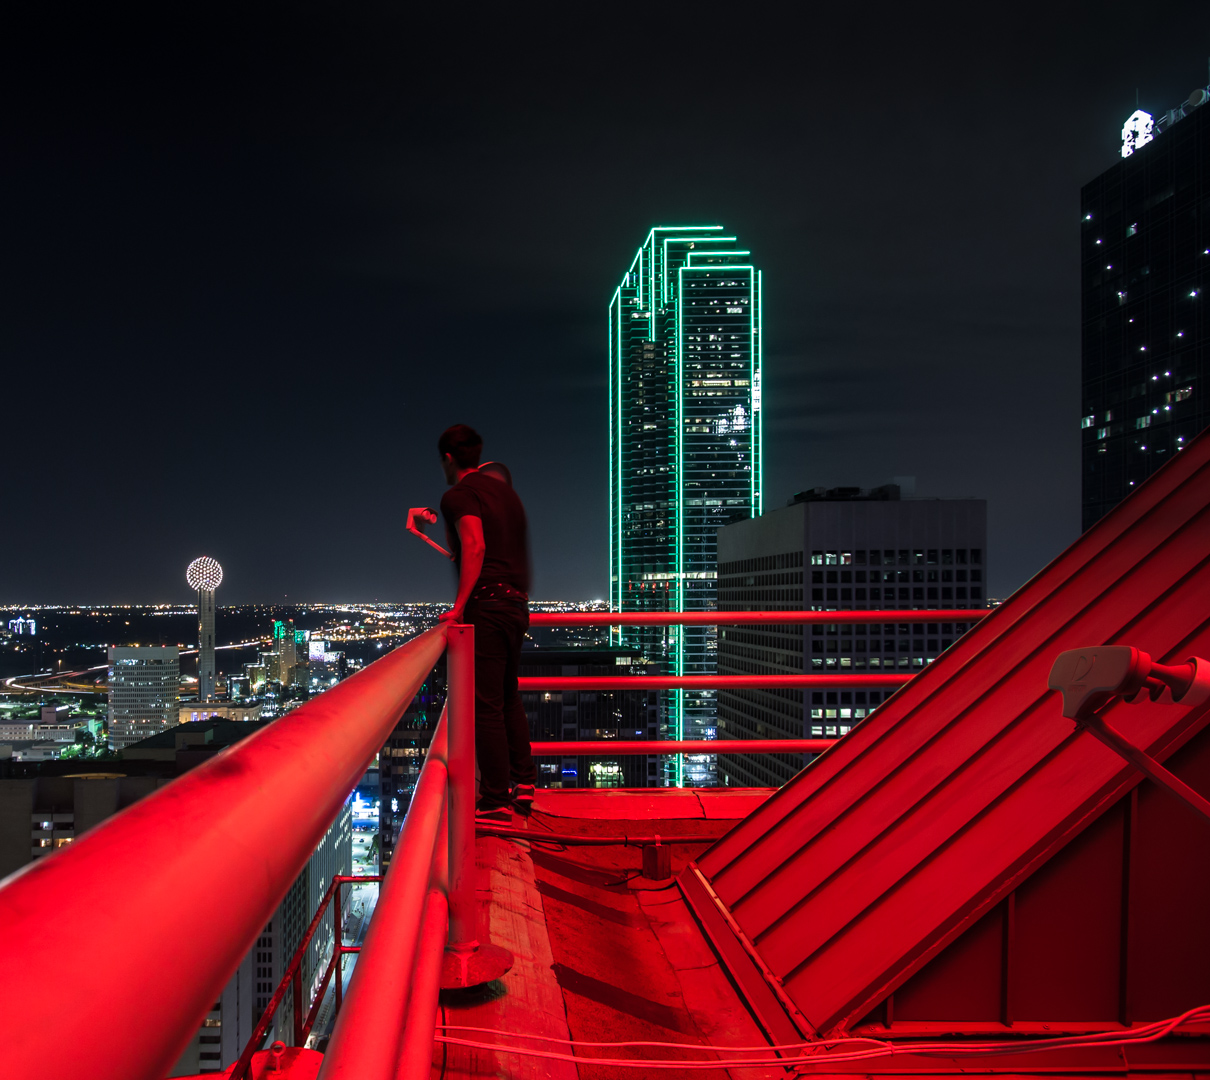 Overlooking downtown while rooftopping in Dallas & Dallas Rooftopping - Pegasus - U.S.A. - Finding Midnight memphite.com